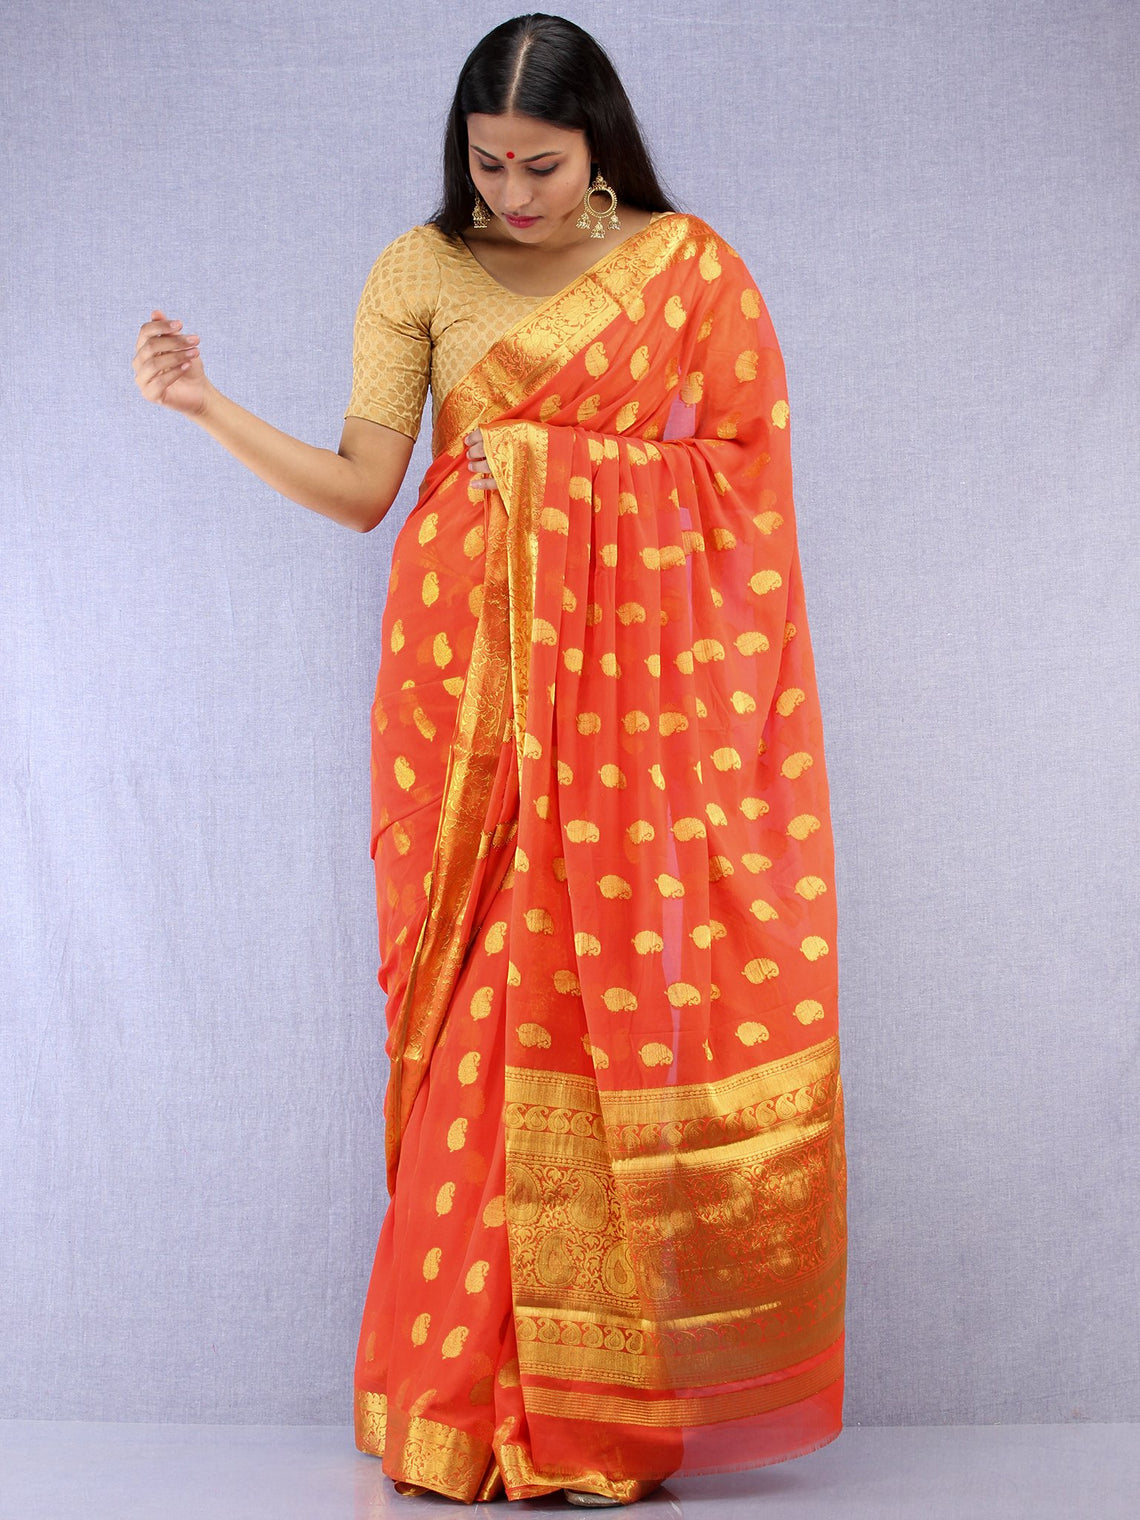 Banarasee Chiffon Saree With Golden Zari Weave - Coral & Gold - S031704402